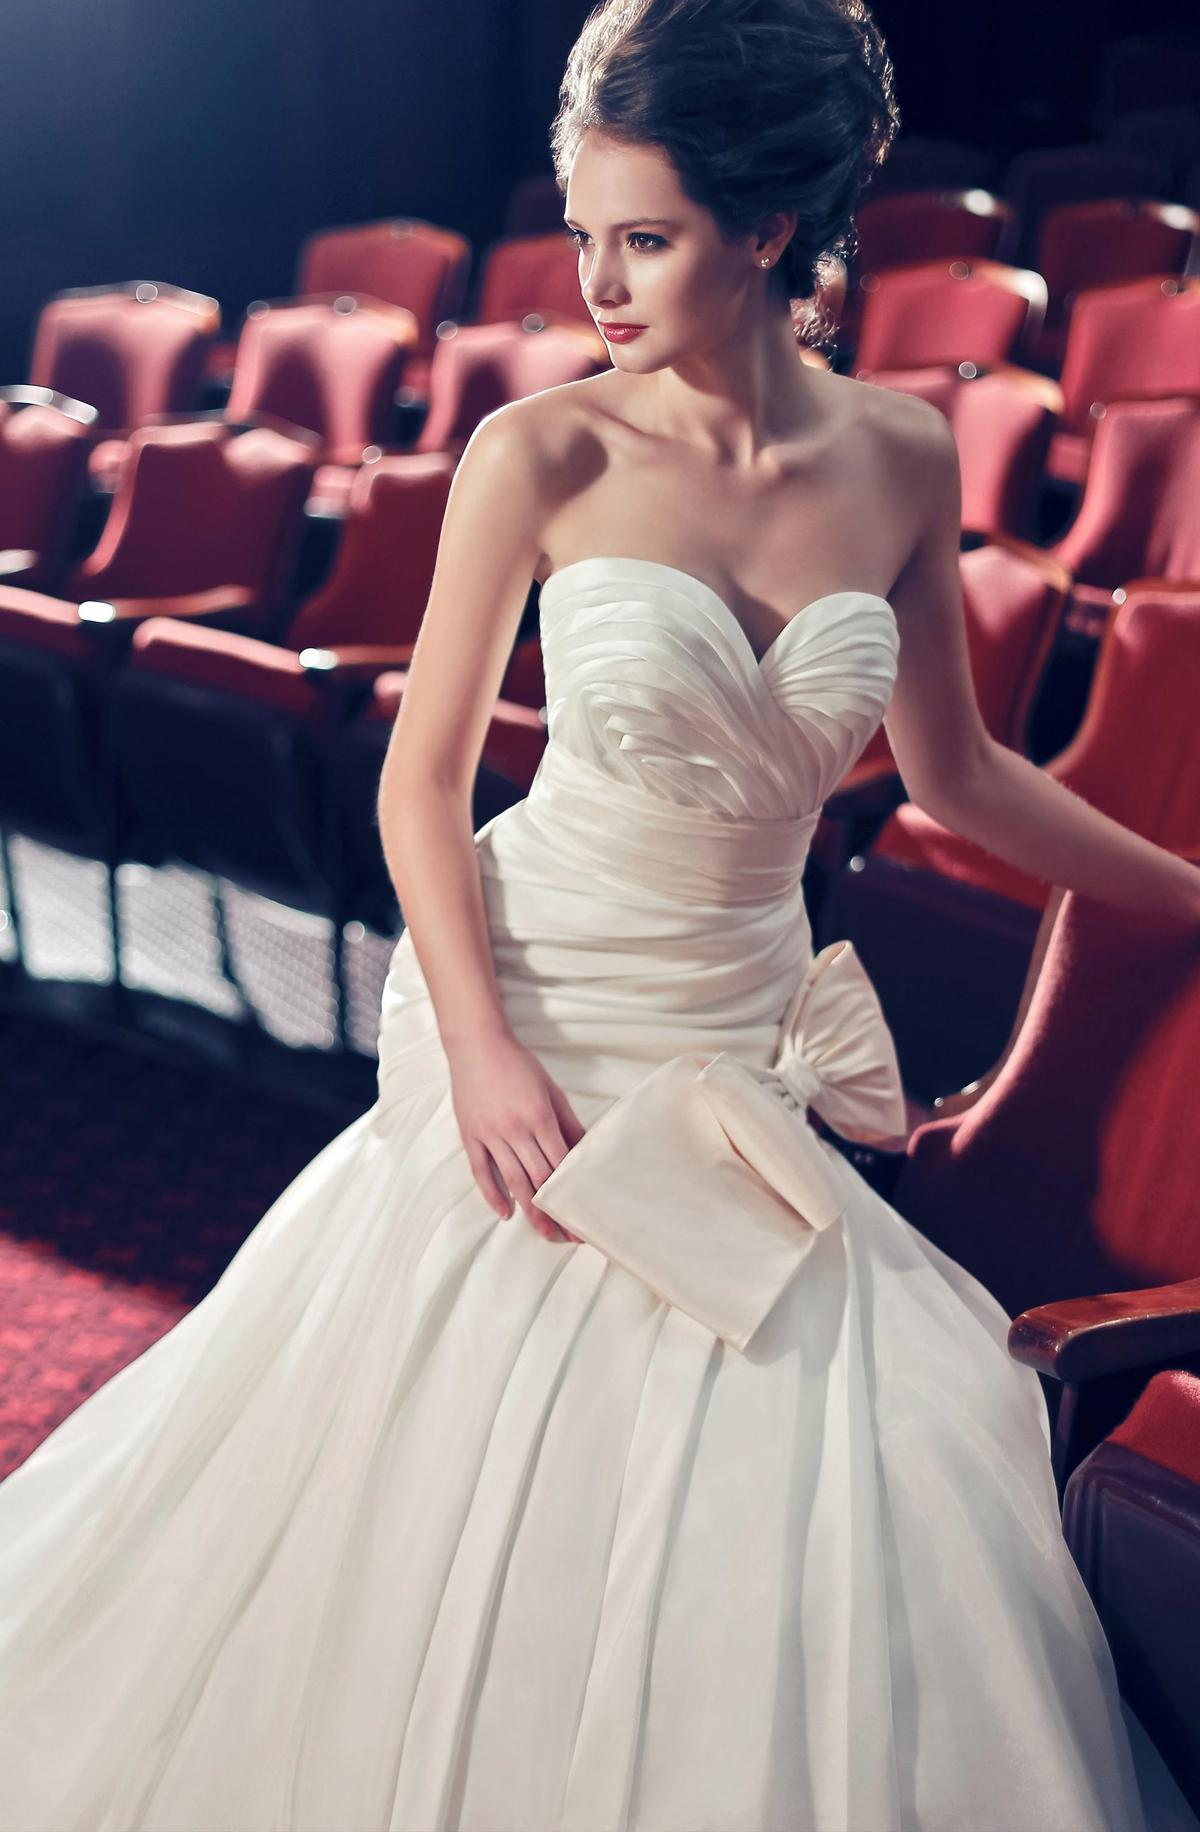 http://www.pwimages.com/images/perfectbride/ee60108809c161add4e8e7d34207ba04-002-cropped.jpg